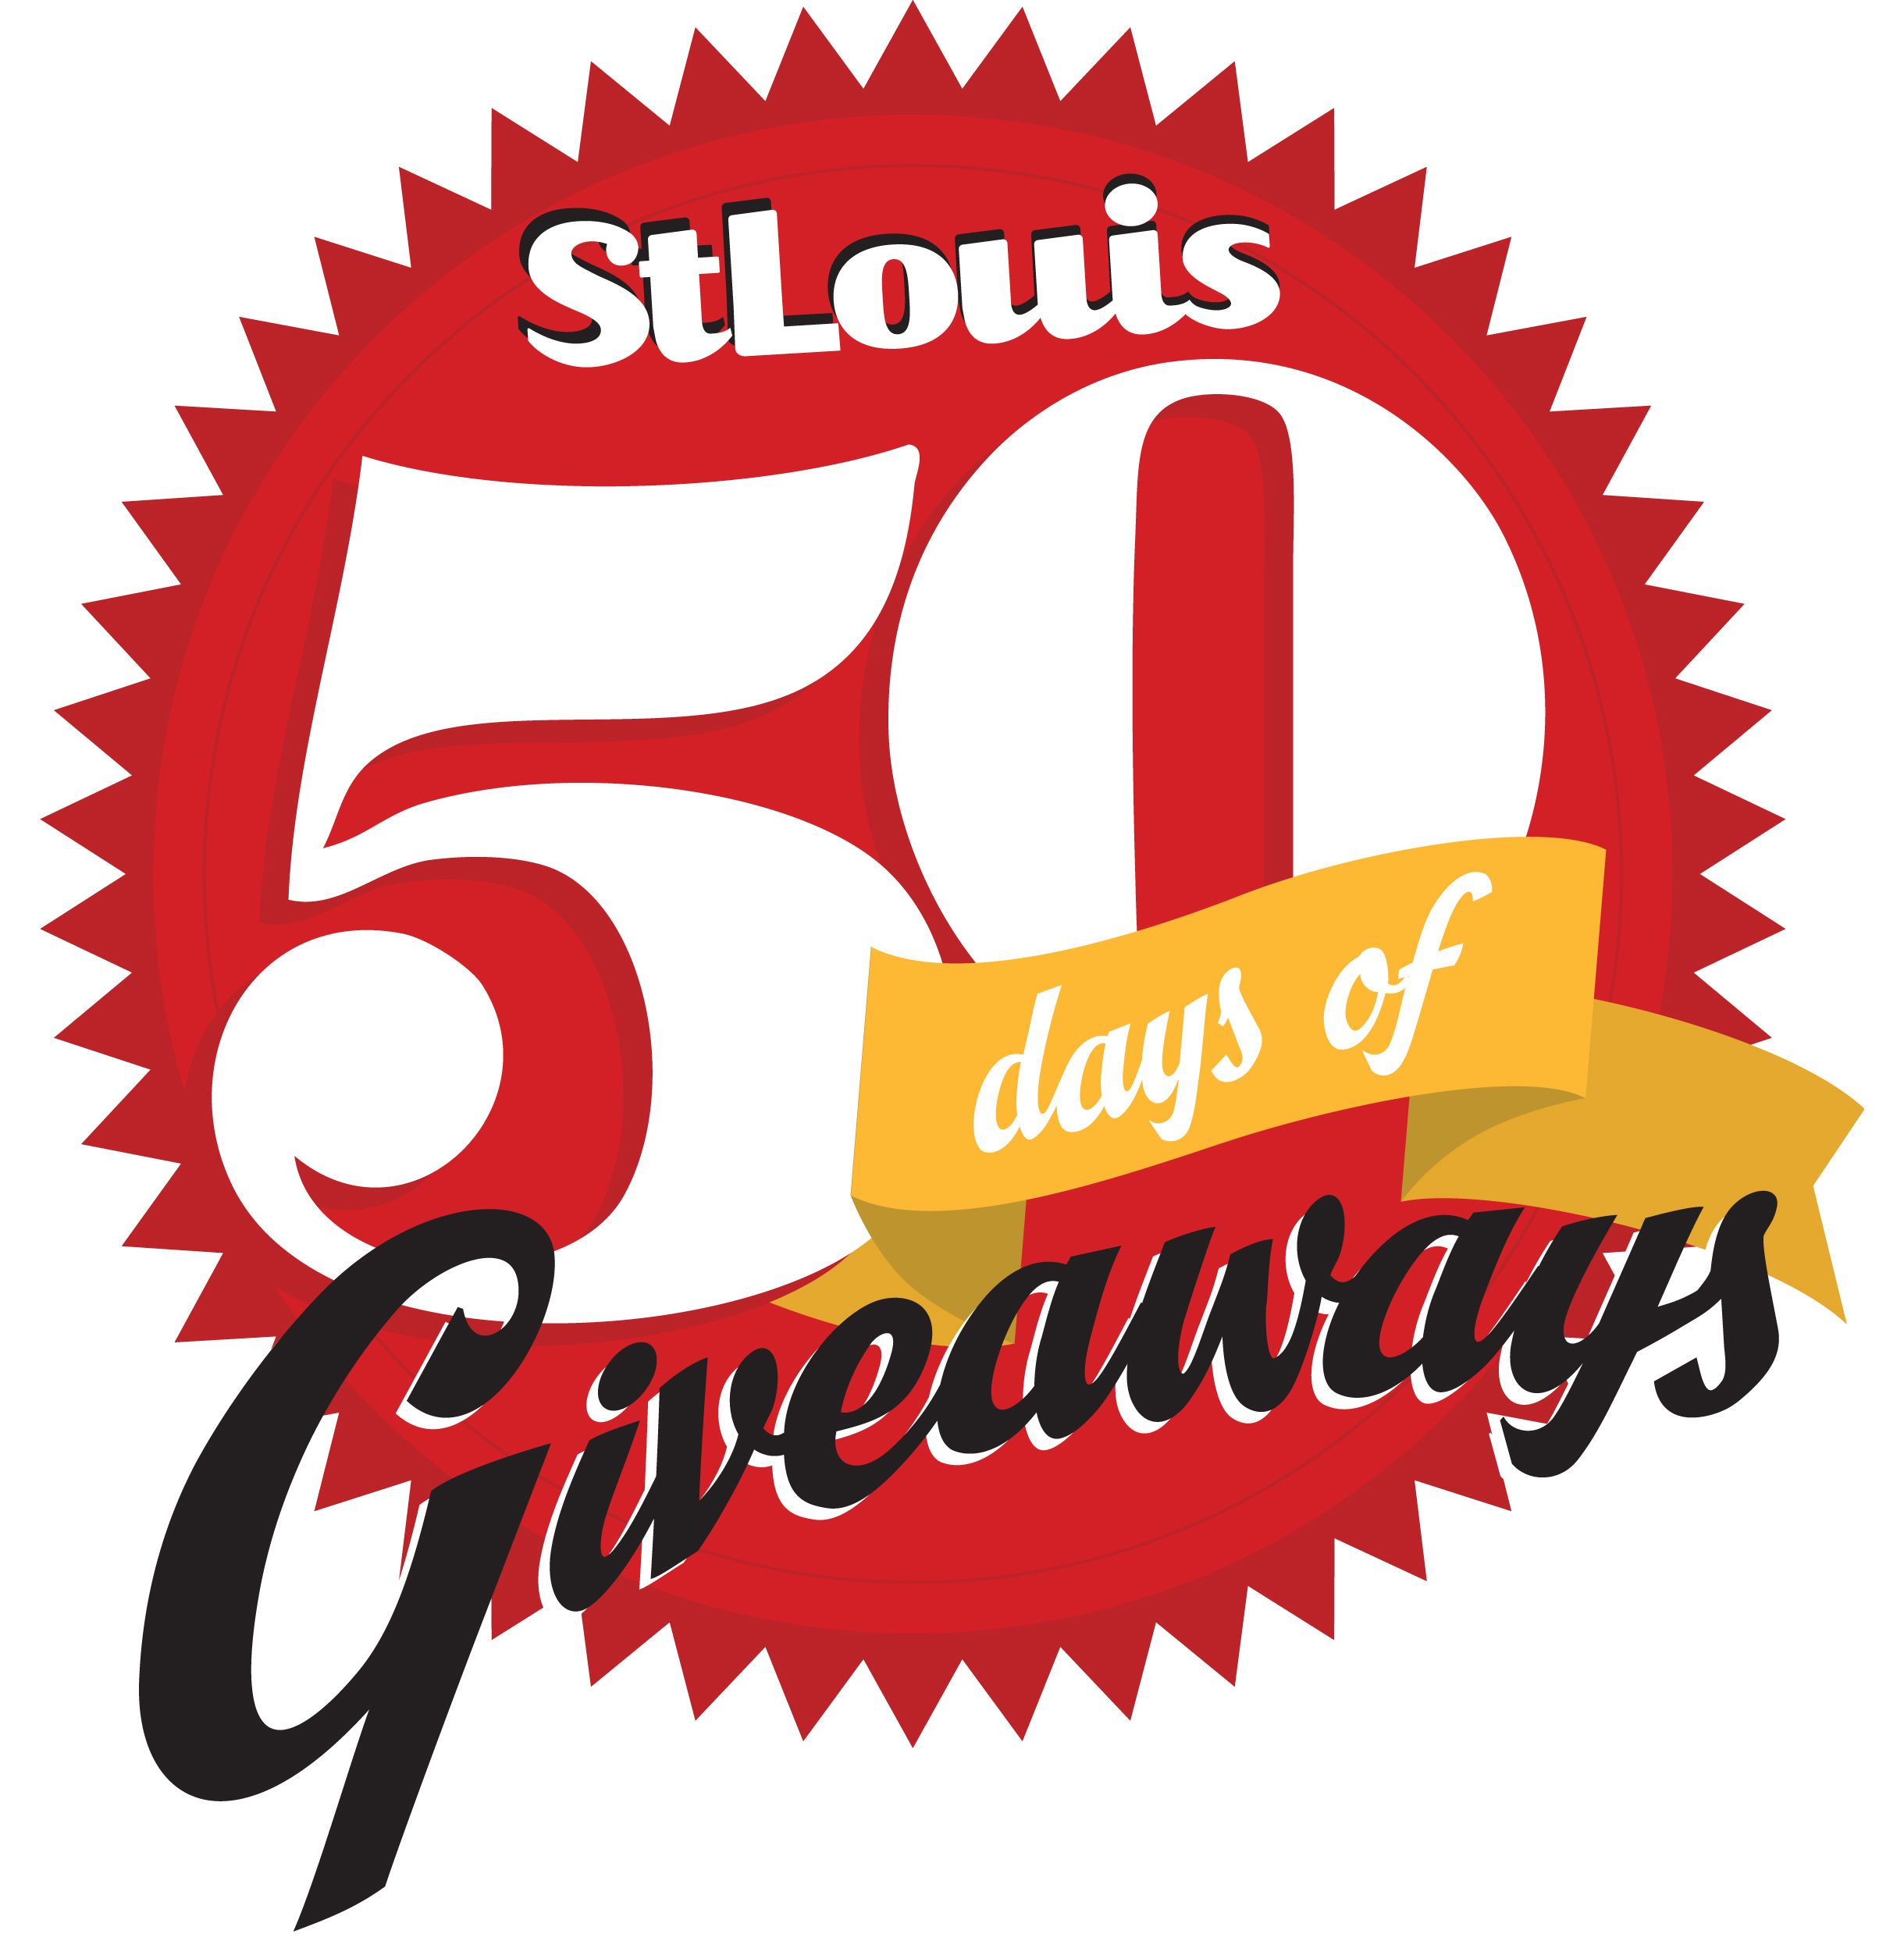 In honor of 50 years of publishing St. Louis Magazine, we are giving our readers a chance to win 50 fabulous prizes for 50 straight days.  Every day features a new prize and a brand new chance to win. Plus, each daily winner will be entered for a chance to win the $25,000 grand prize: a 3-year automobile lease from Frank Leta Automotive Group. Mark your calendar—enter once a day, every day.